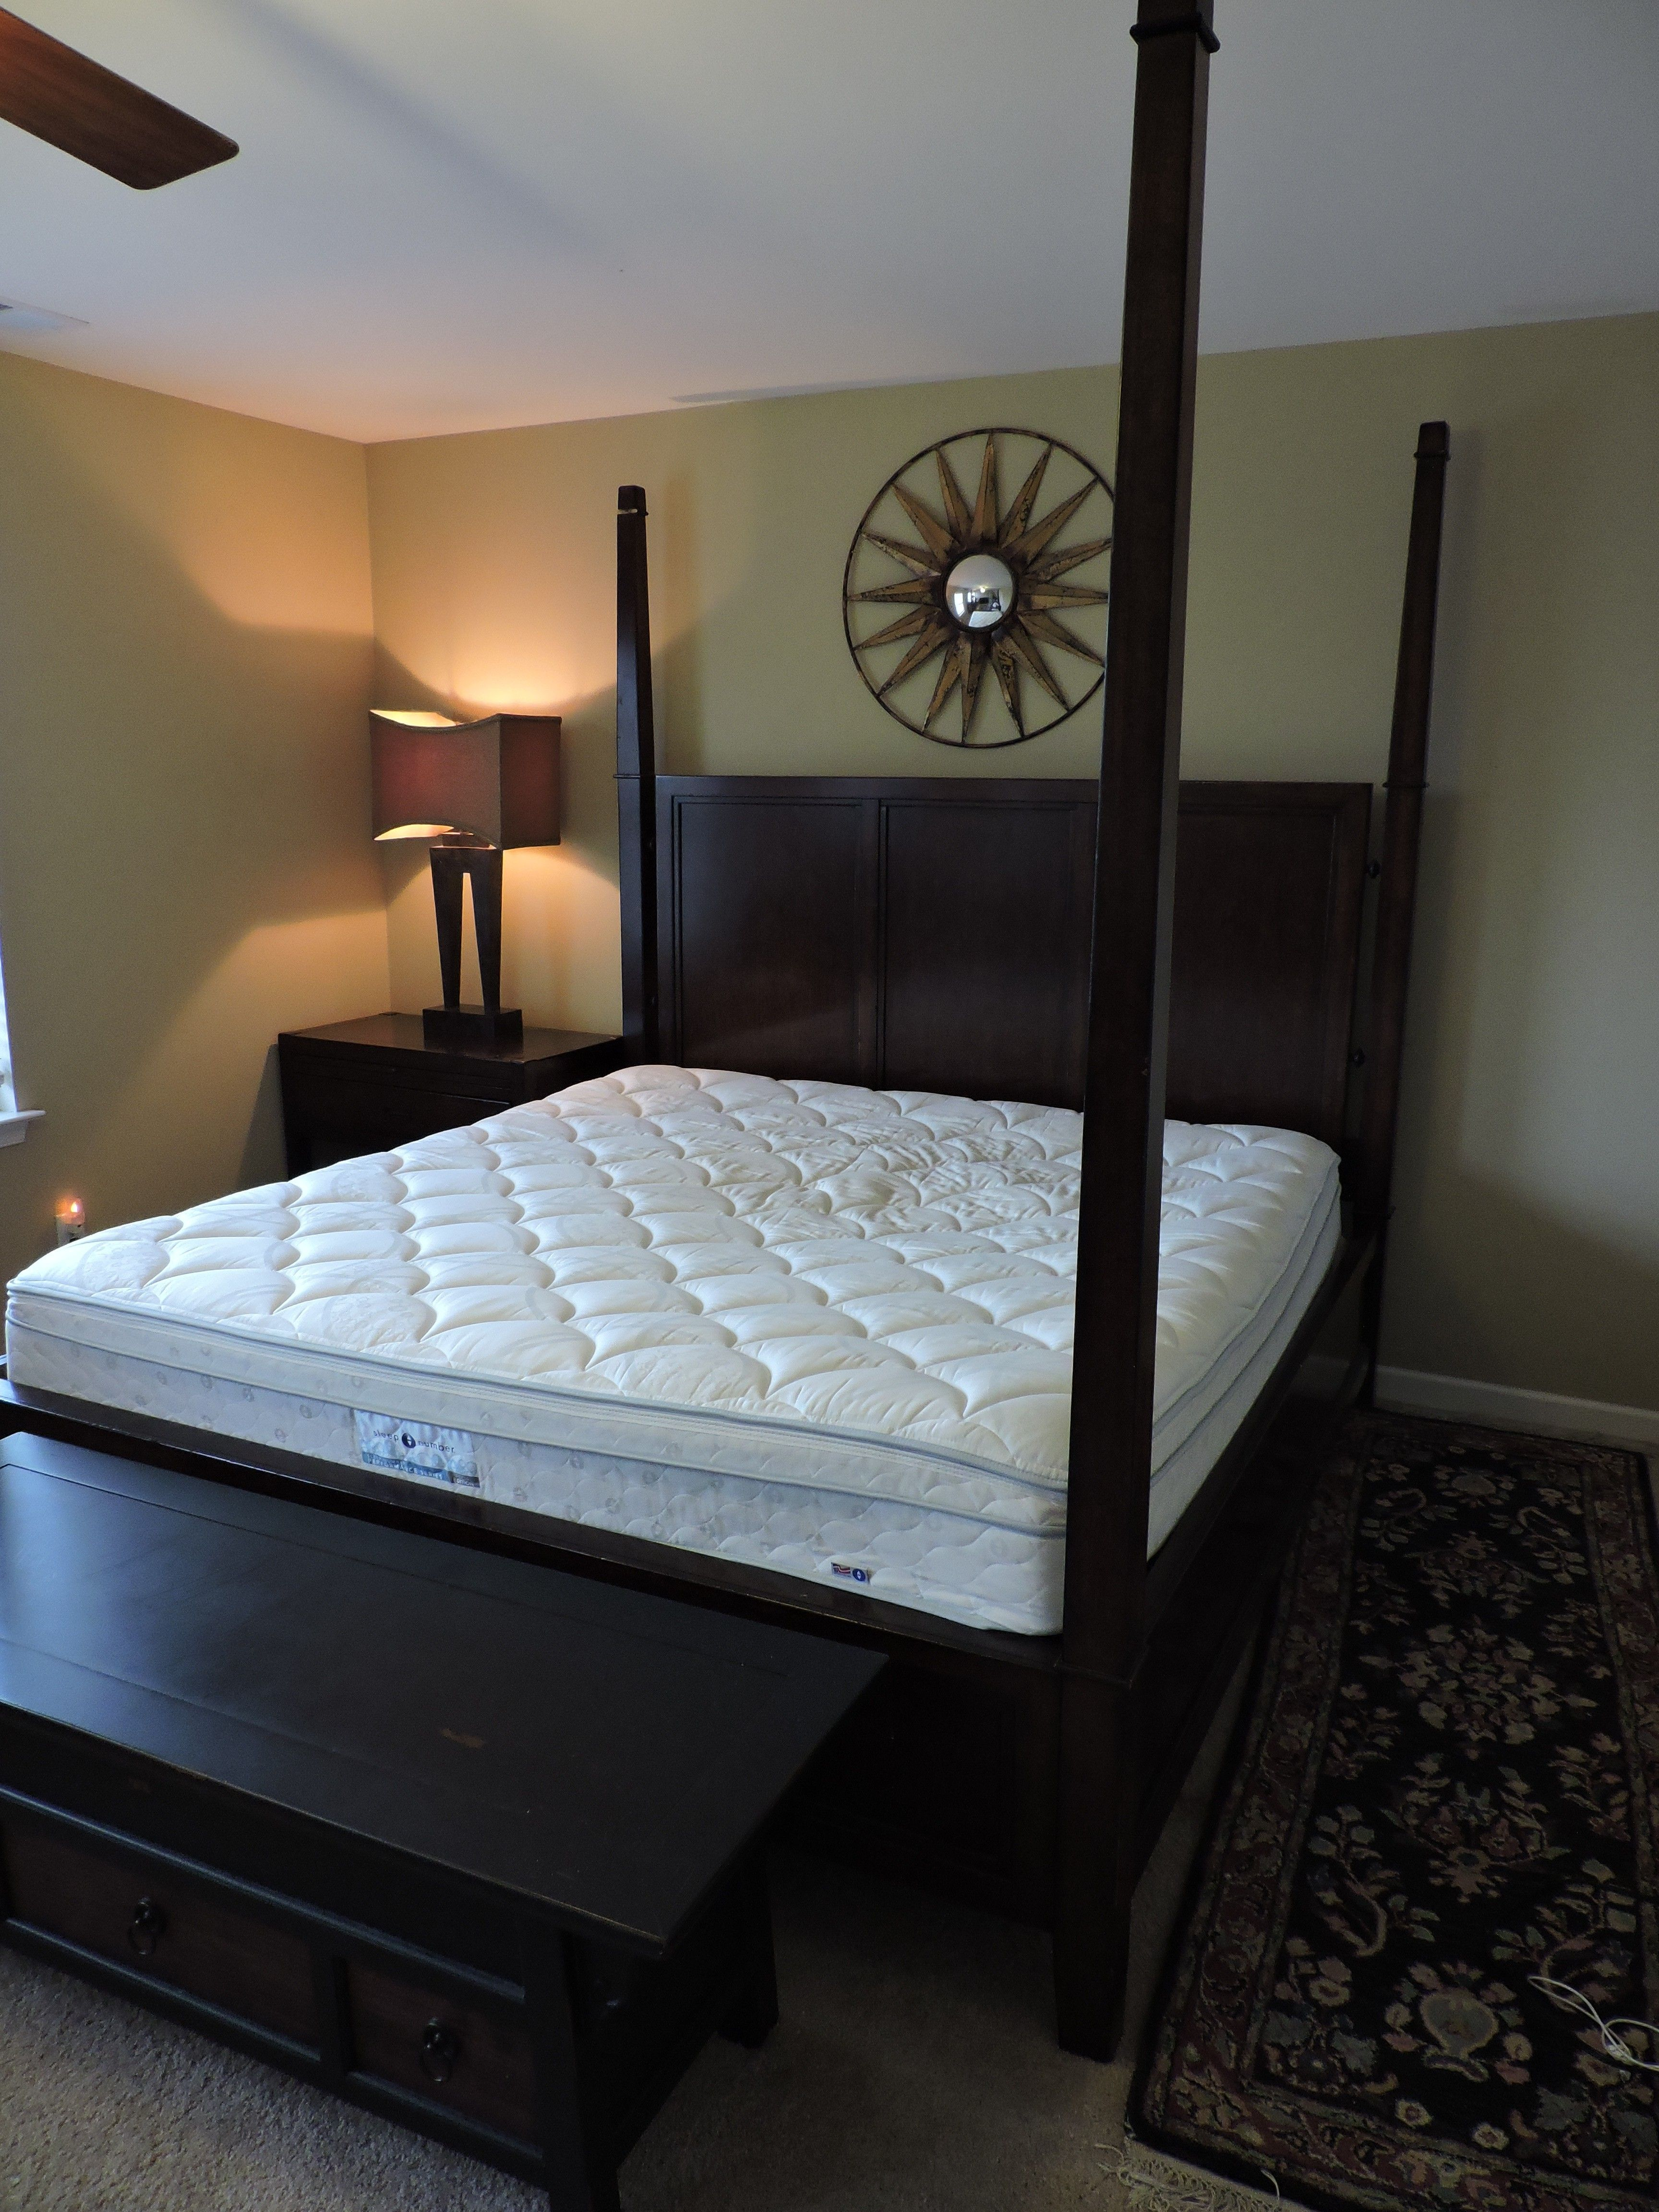 KING Bedroom Set Thomasville w/ Mattress Sleep Number